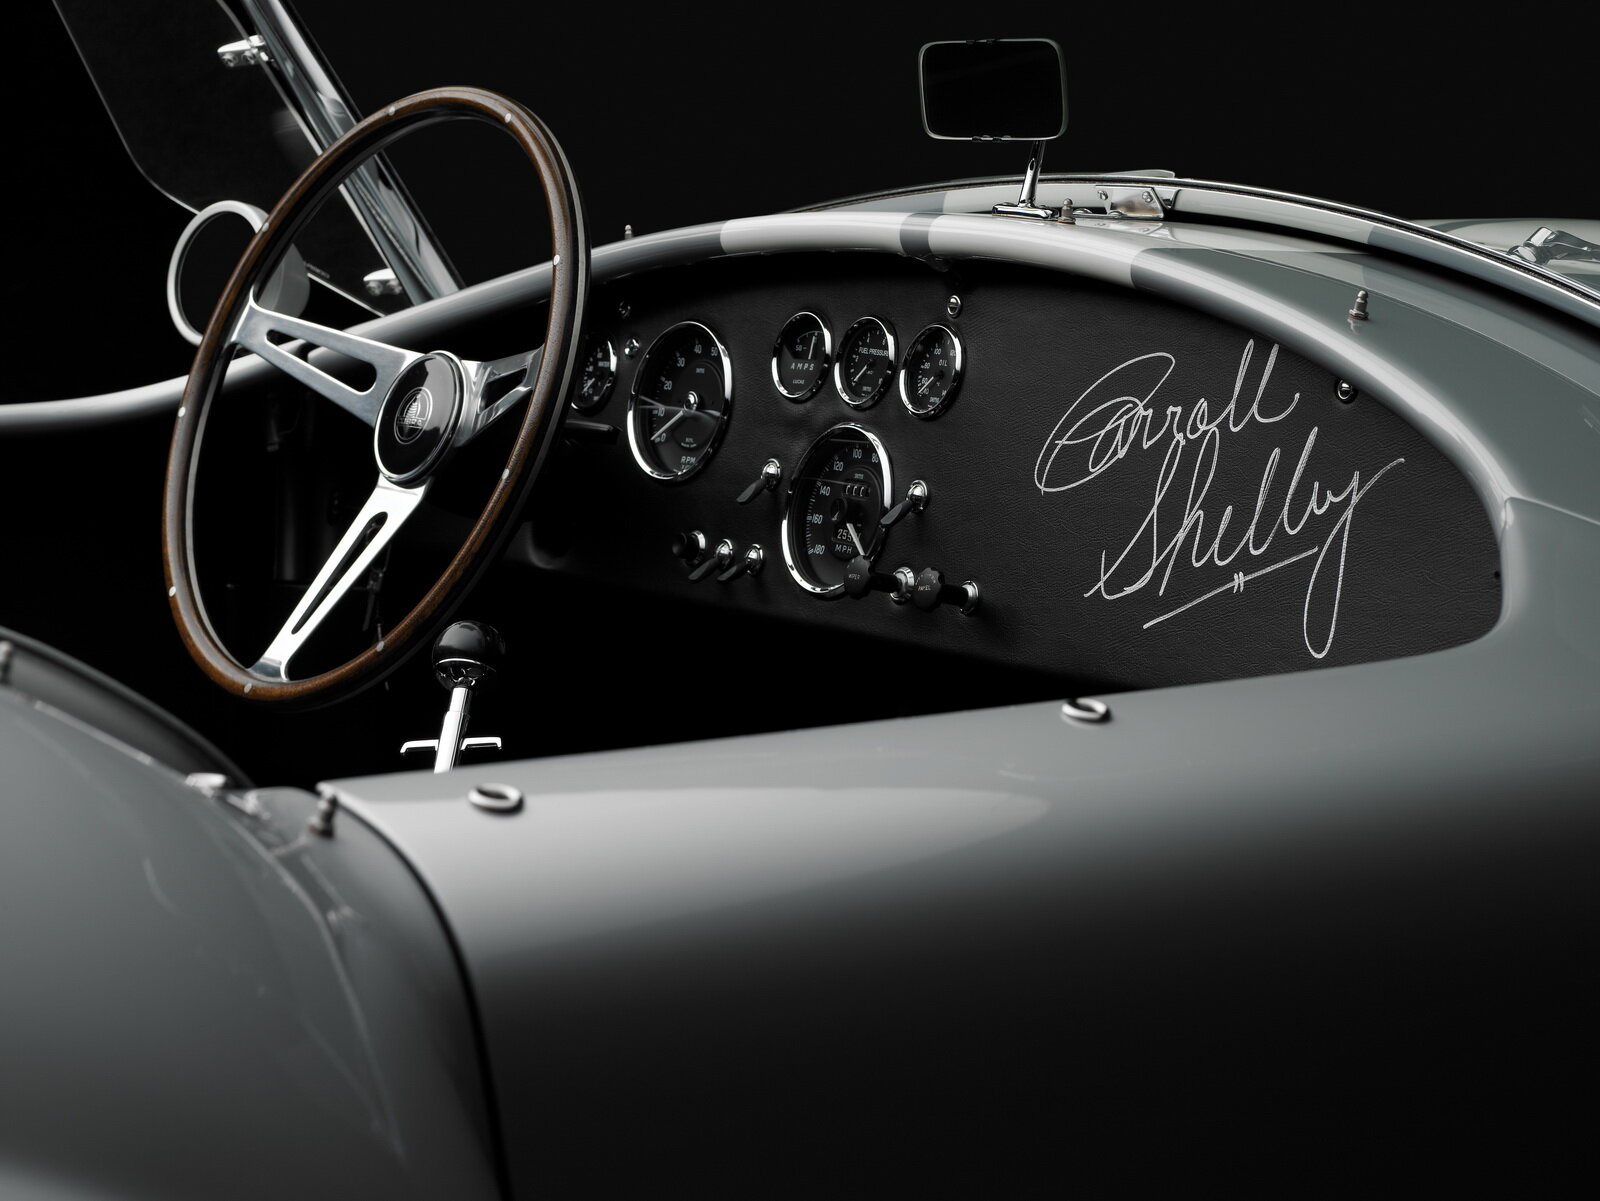 shelby-cobra-427-is-up-for-sale_100638133_h.jpg